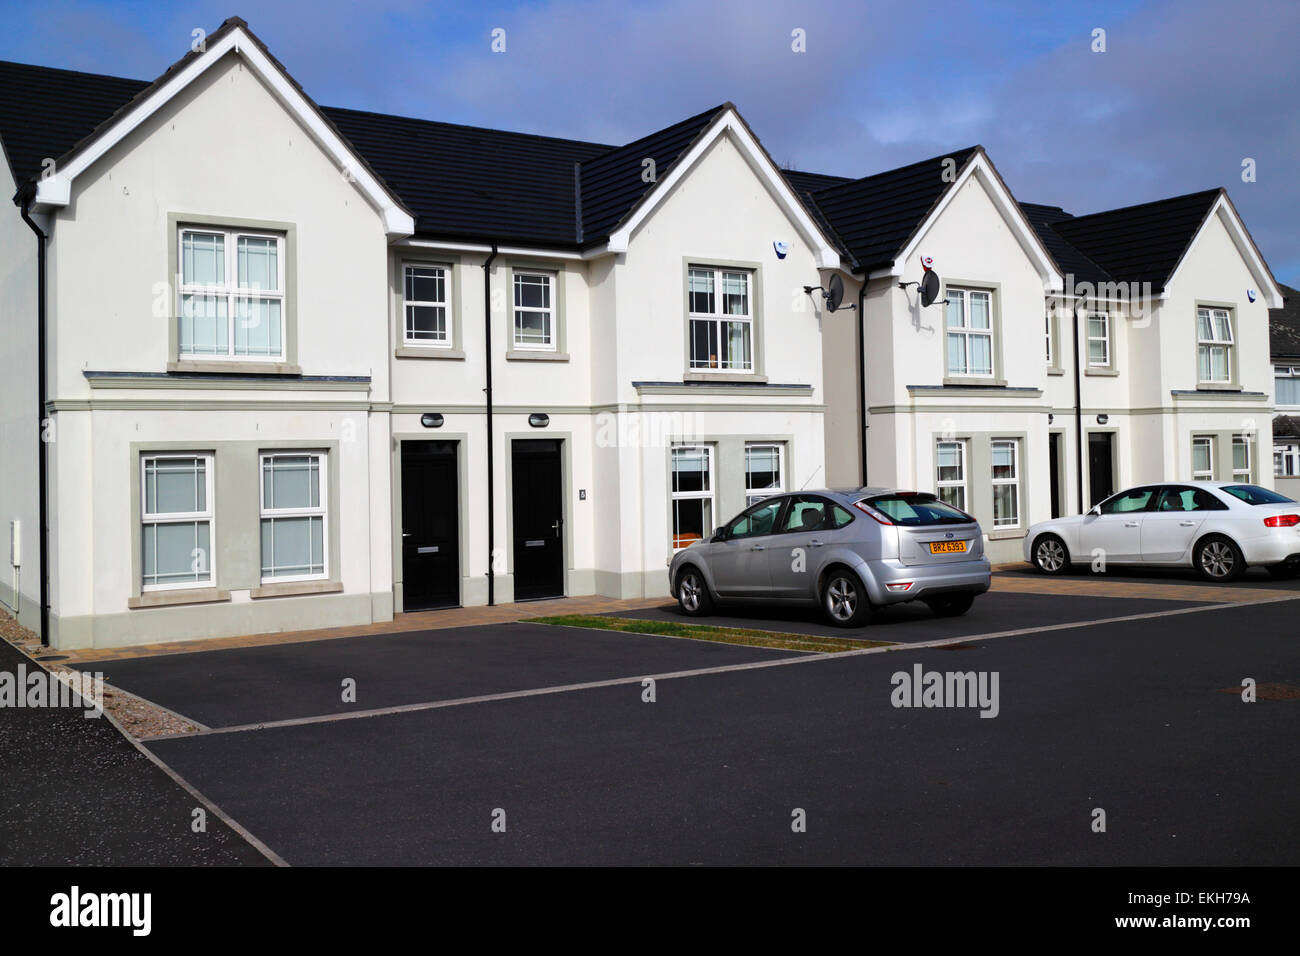 northern ireland new build semi detached properties with parking spaces in a new development - Stock Image